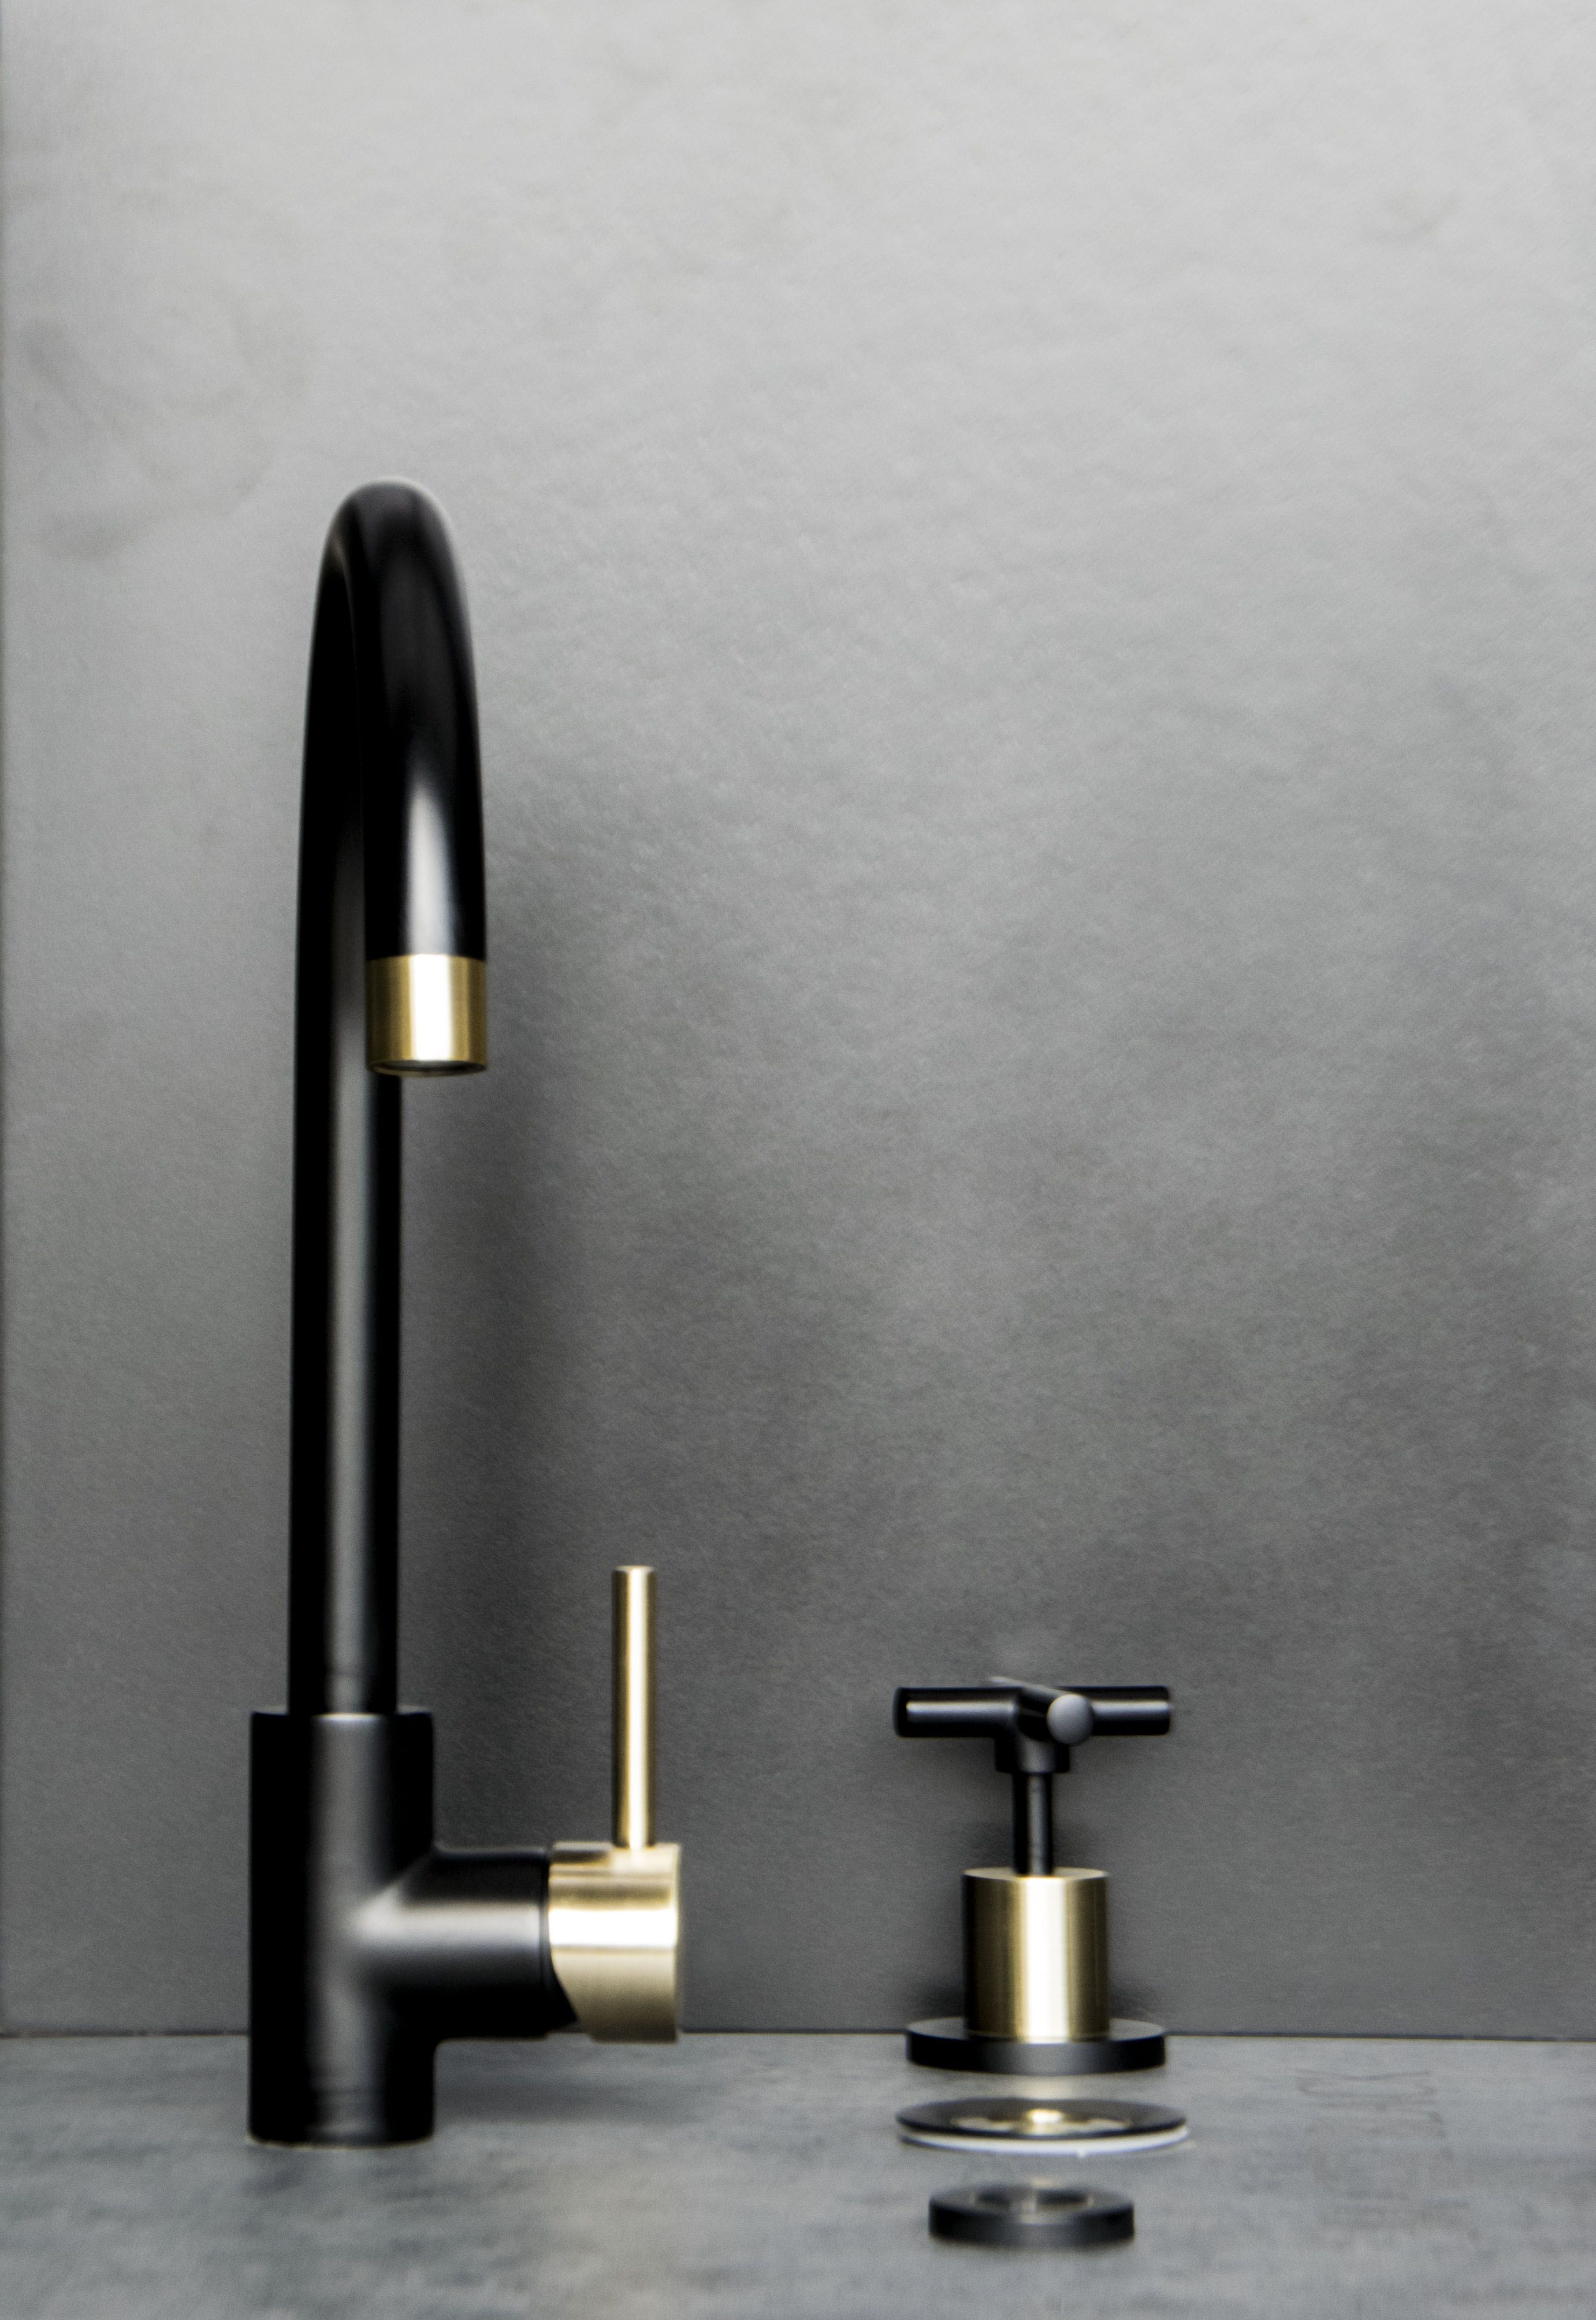 Round Kitchen Mixer Tap Black Gold Kitchen mixer